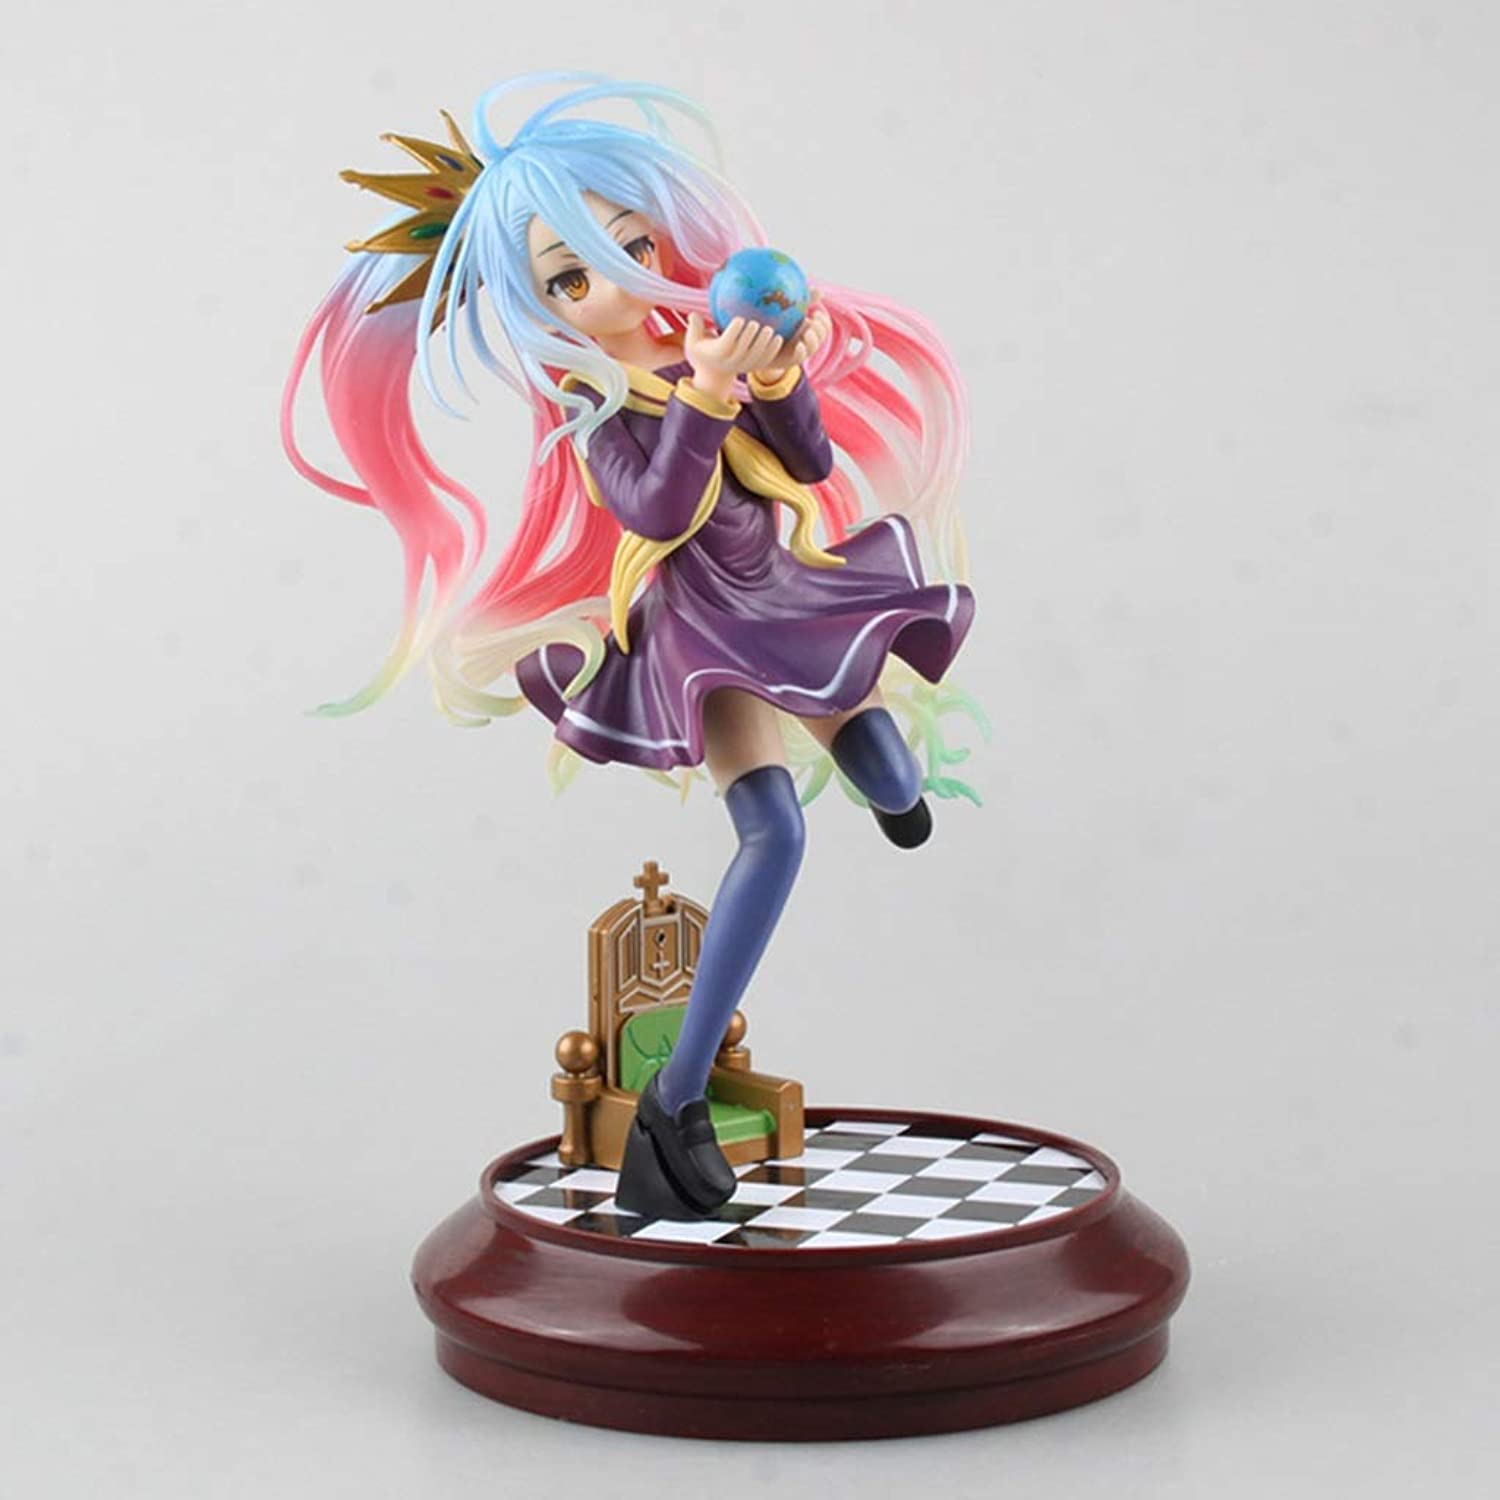 JXJJD NO GAME NO LIFE Game Life White Hand Model Souvenir Collection Crafts